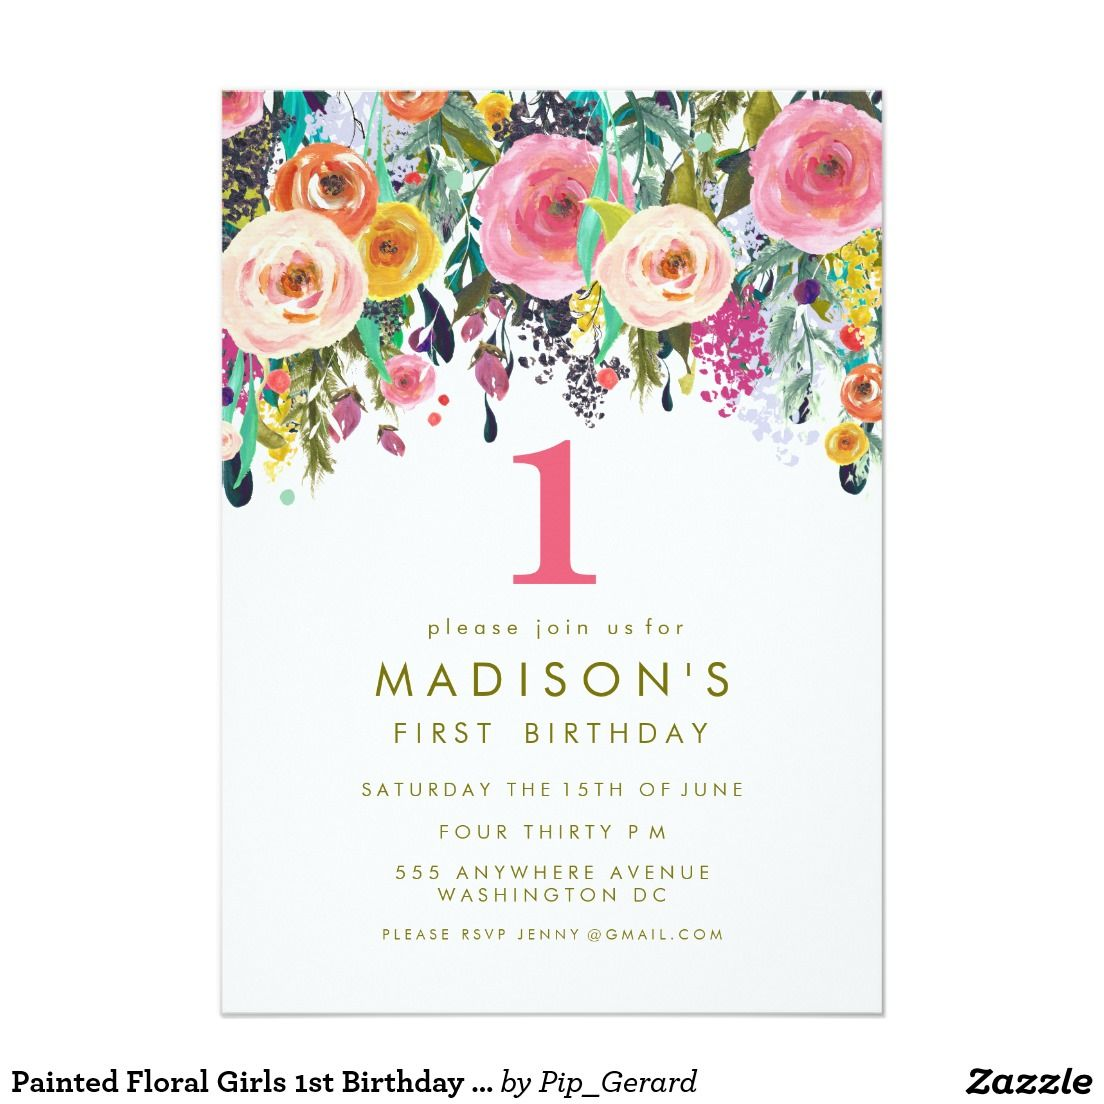 Painted Floral Girls 1st Birthday Invite | Moving capitalism along ...